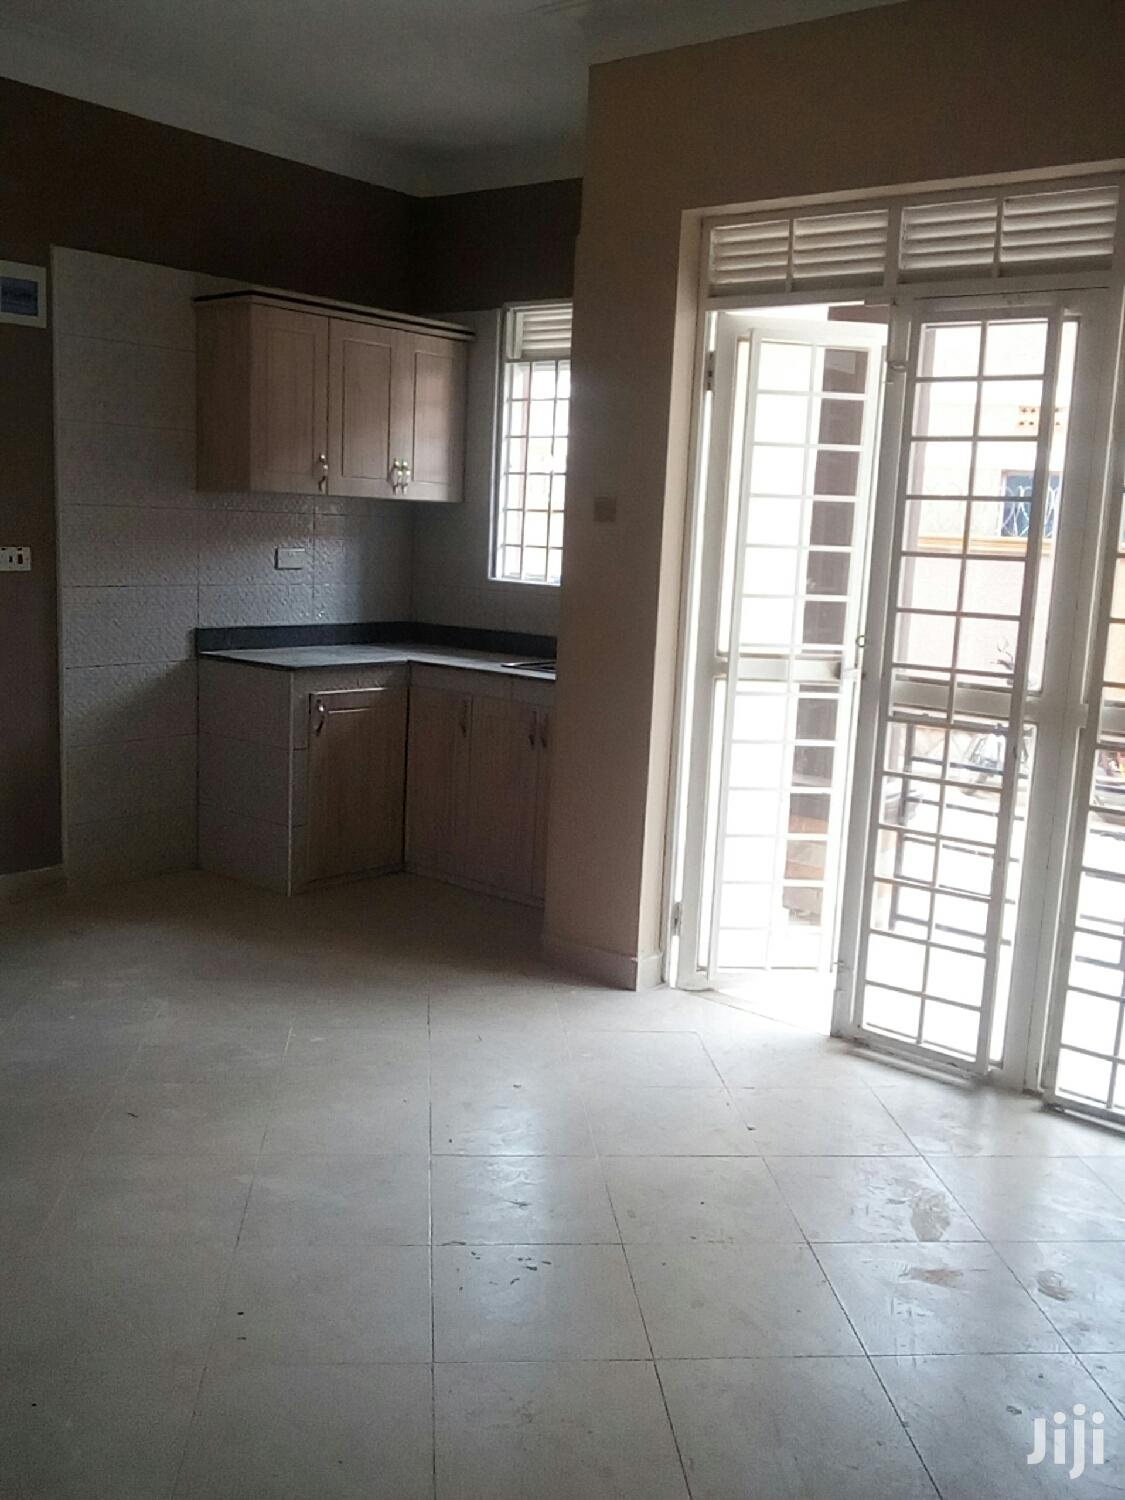 Single Bedroom Apartment for Rent in Kyanja | Houses & Apartments For Rent for sale in Kampala, Central Region, Uganda